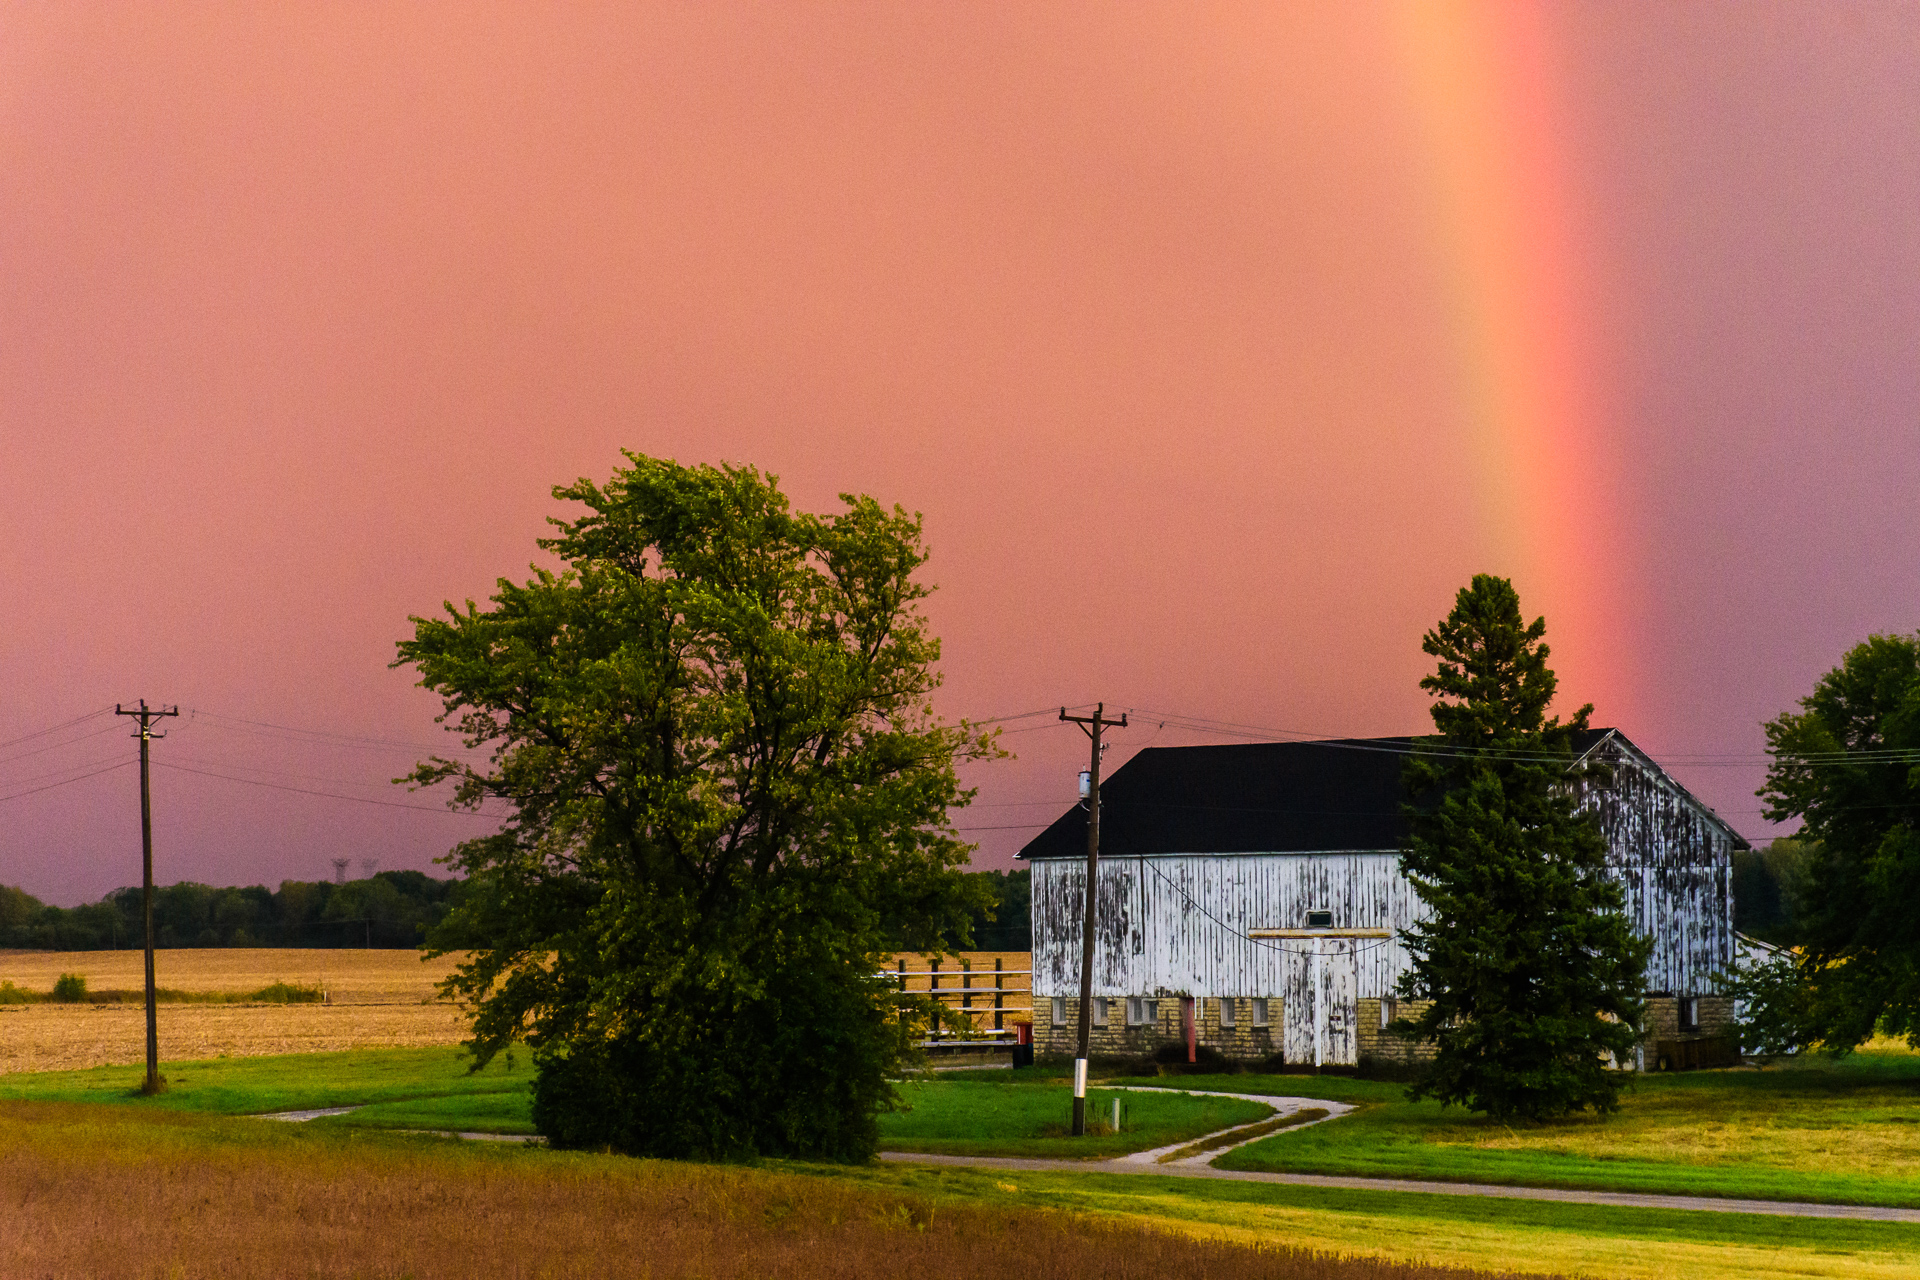 (1/2) A stunning, rainbowed sky sweeps over Site 67, as seen from the NML building, after a thunderstorm on Sept. 25. rainbow, sky, landscape, barn, building, thunderstorm, storm Photo: Giulio Stancari